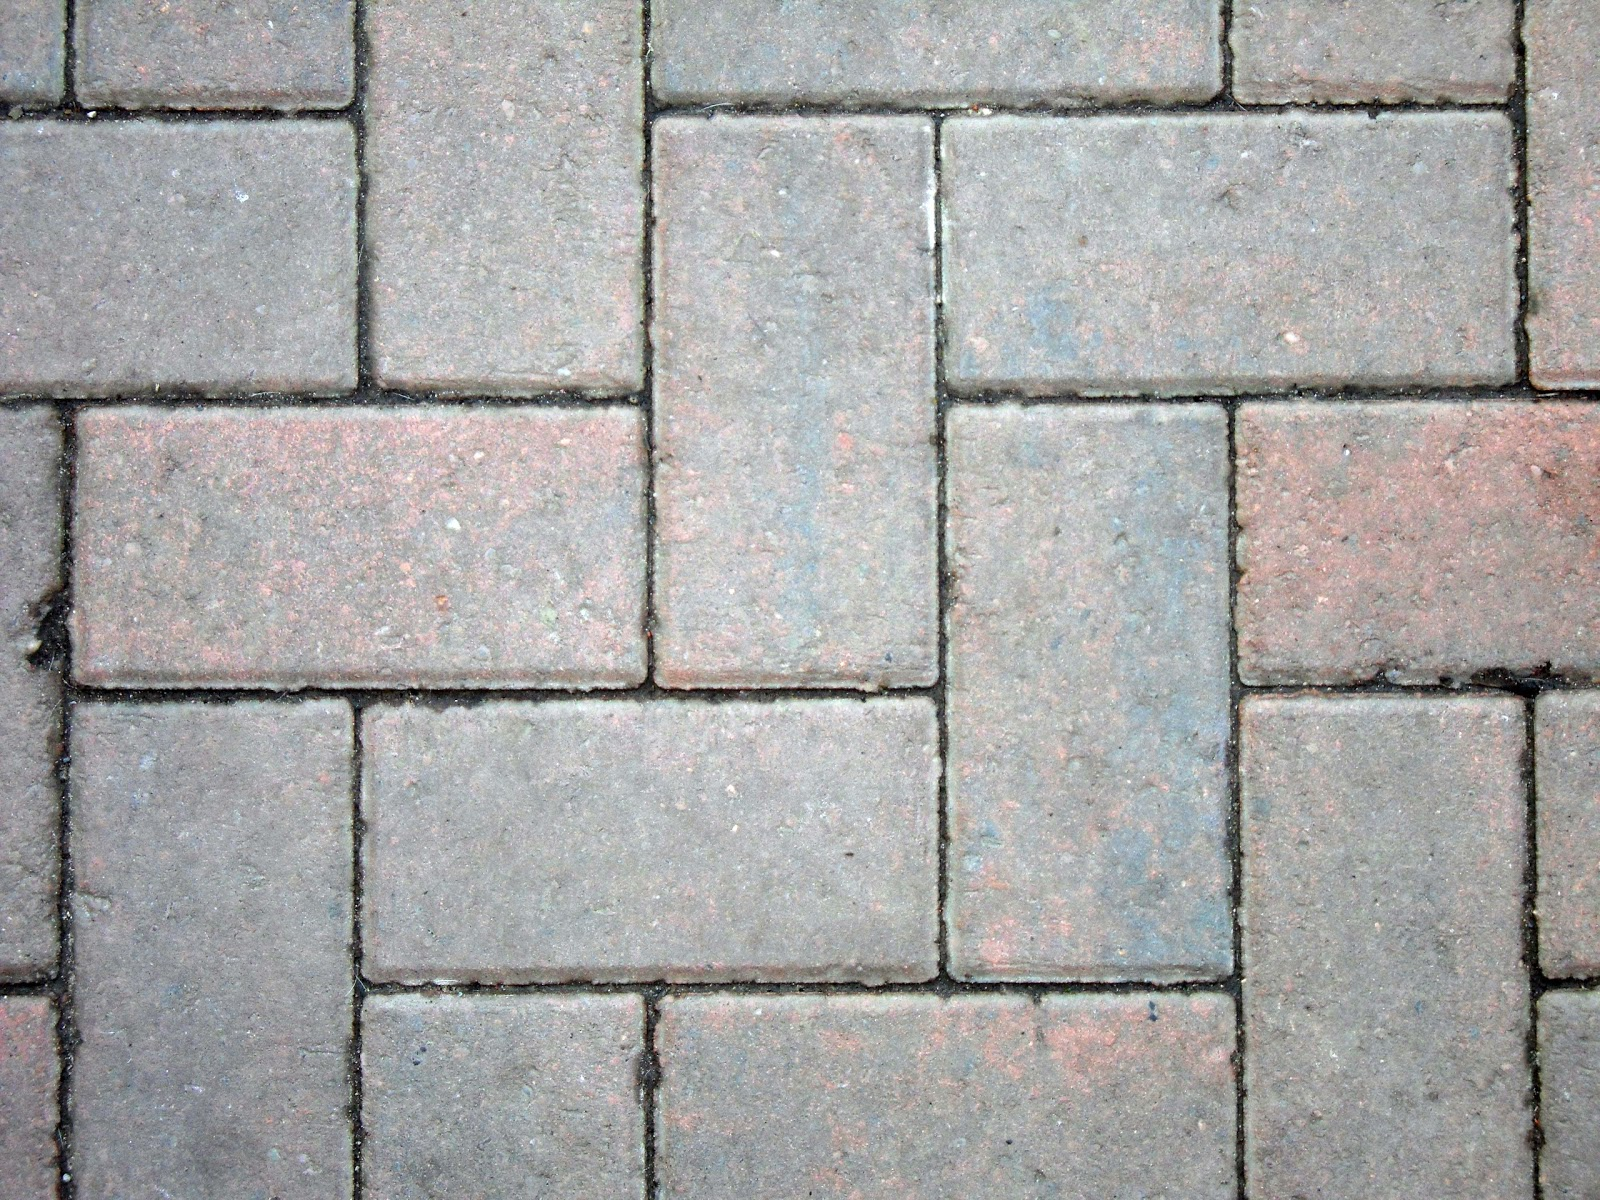 Brick-Pavers-Blocks.jpg